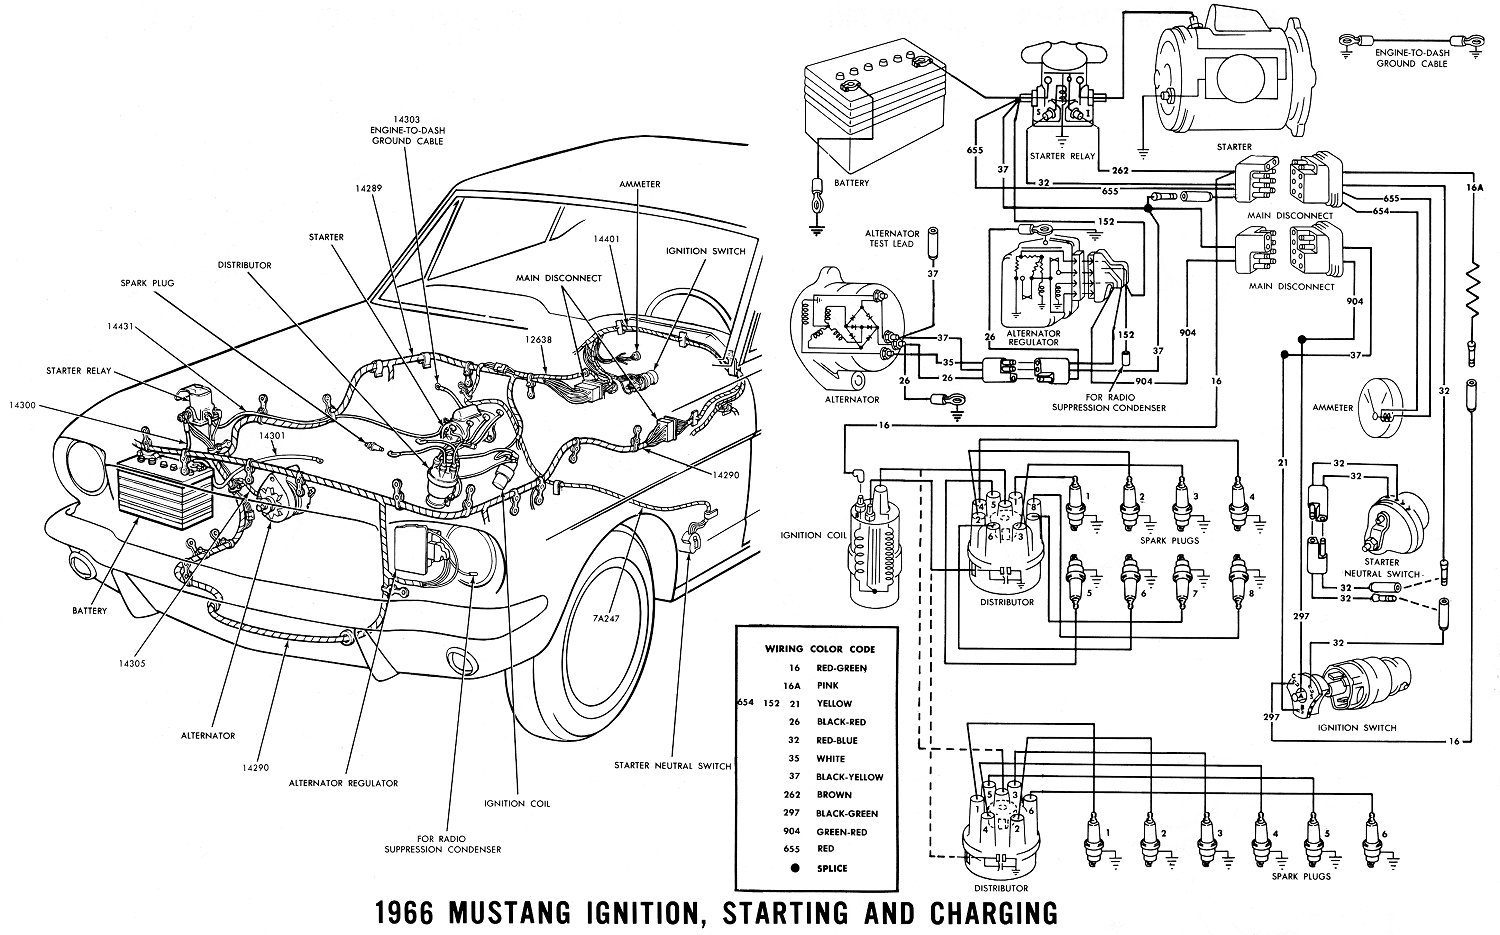 Cool 67 ford mustang wiring diagram contemporary electrical and 2008 Ford Mustang Wiring Diagram 1966 Ford Galaxie 500 Wiring Diagram 1967 Plymouth Satellite Wiring Diagram on 1967 ford mustang wiring diagram manual reprint